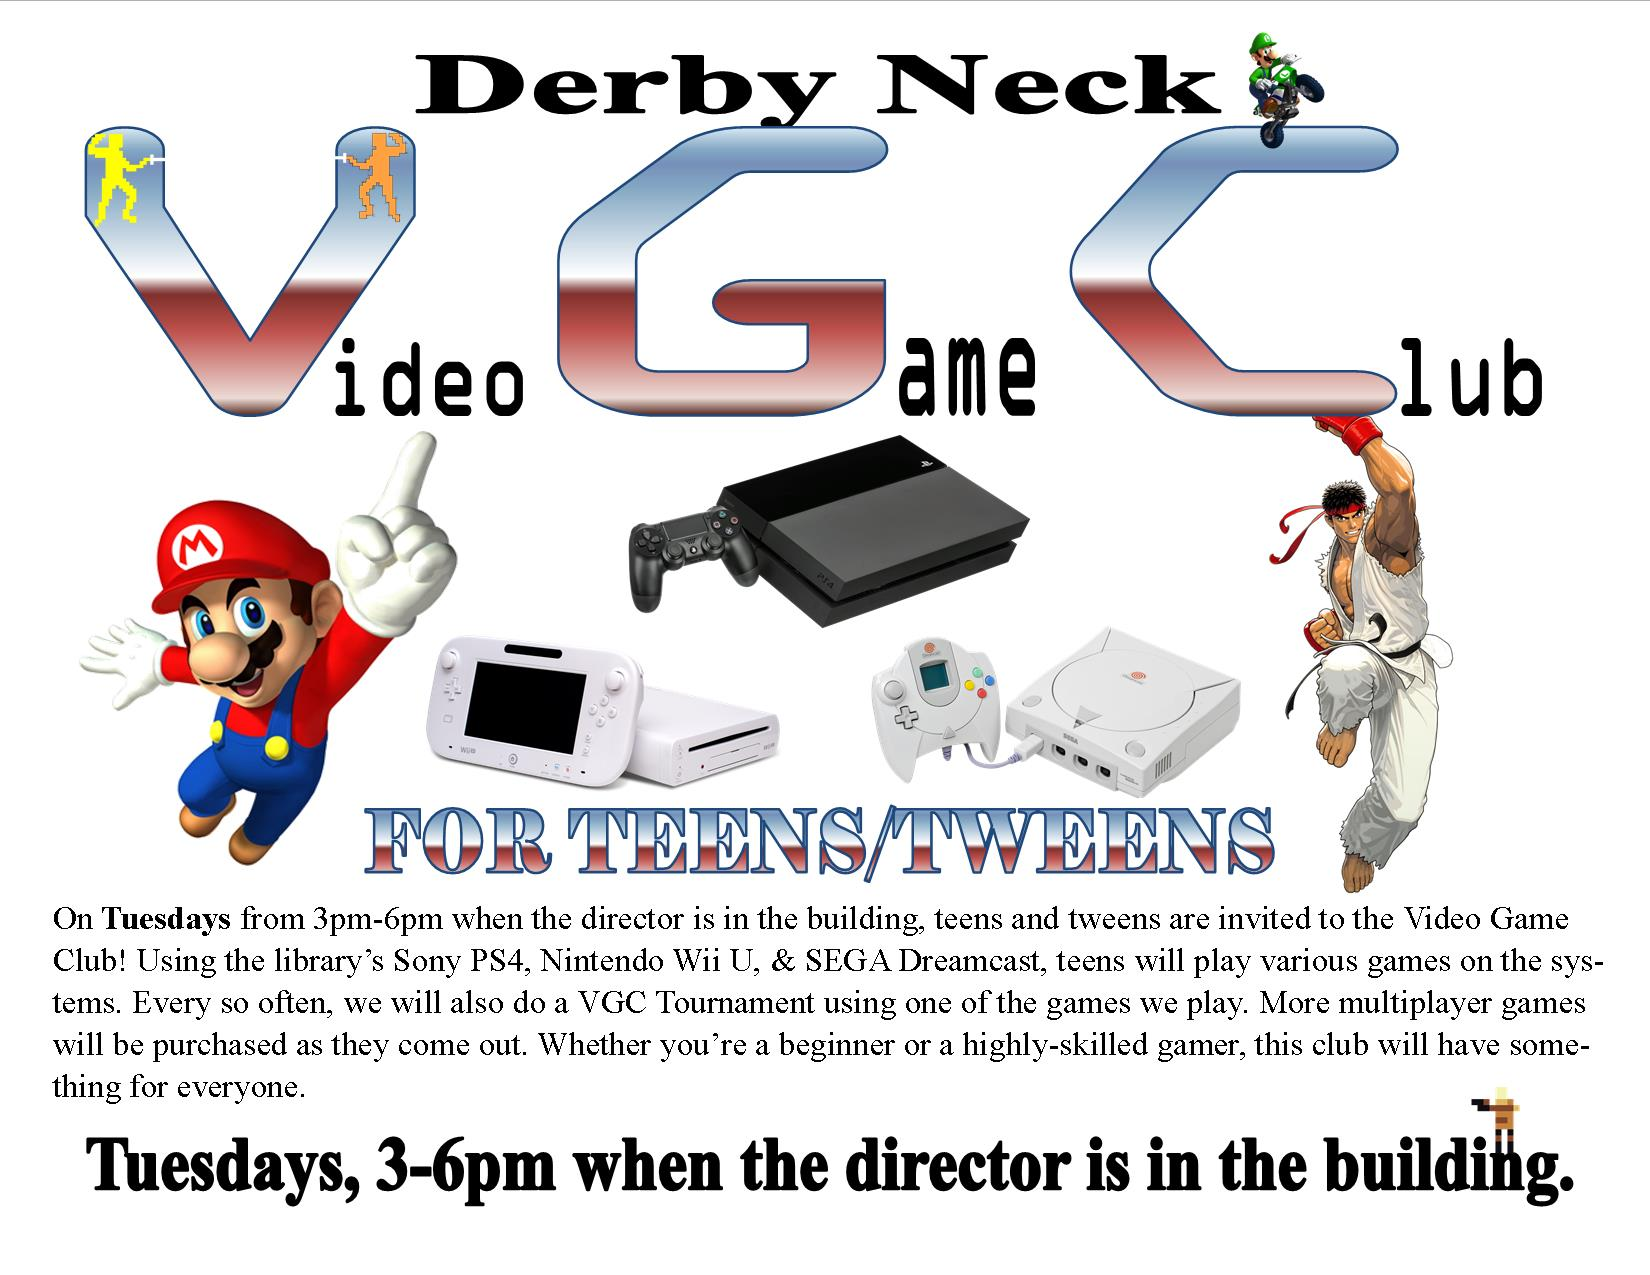 Derby Neck Video Game Club - Tuesdays at 3pm